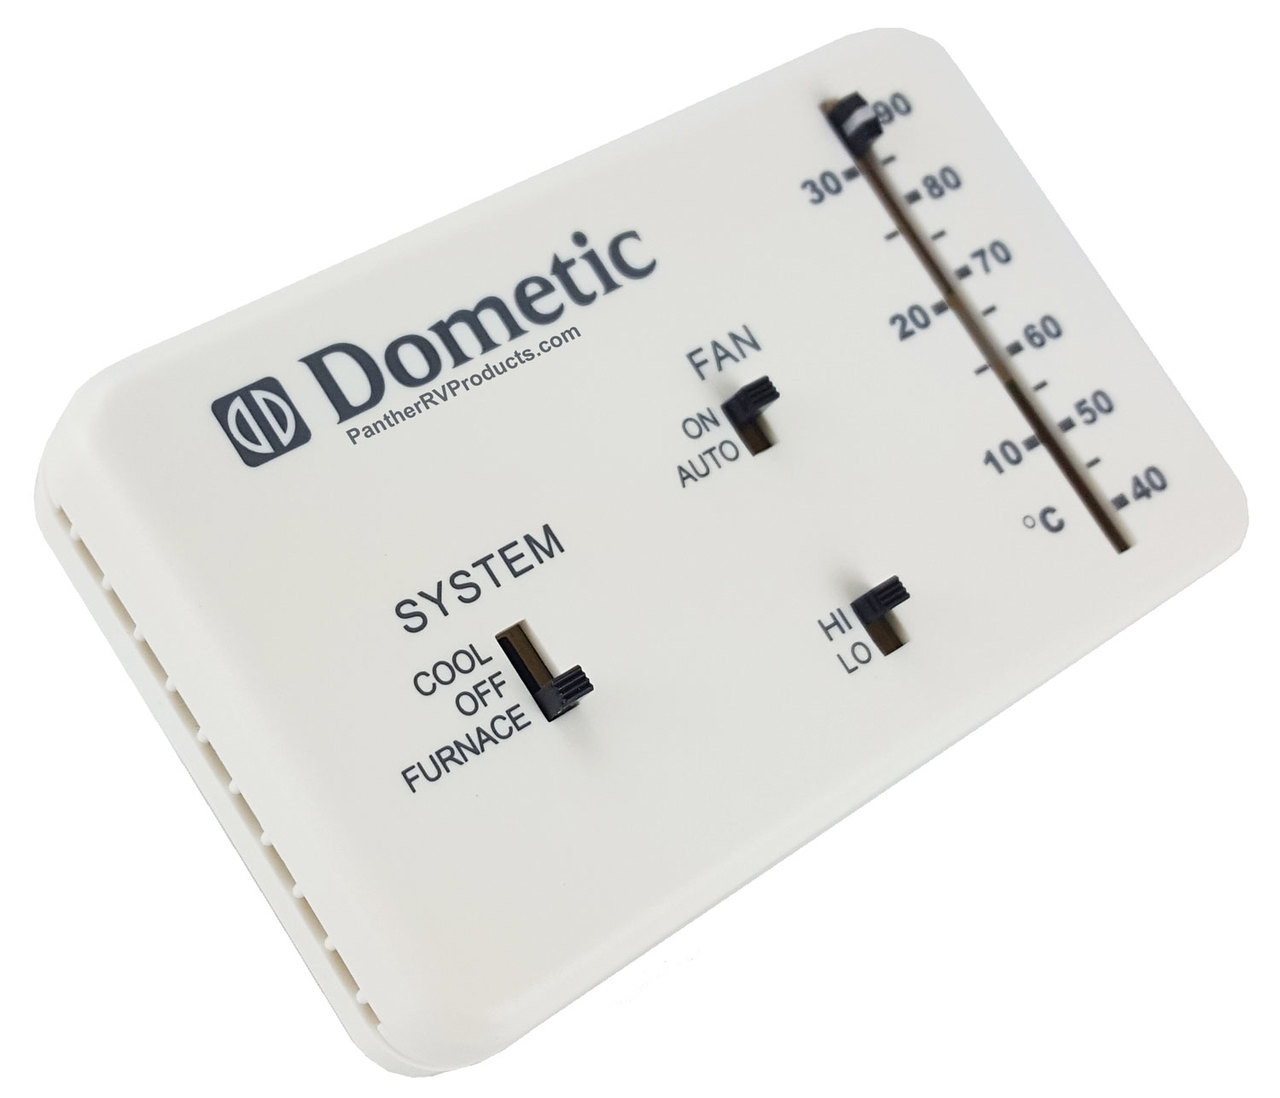 small resolution of dometic 3106995 032 thermostat 6 wire analog control heat cool duo temp thermostat 7 wire diagram